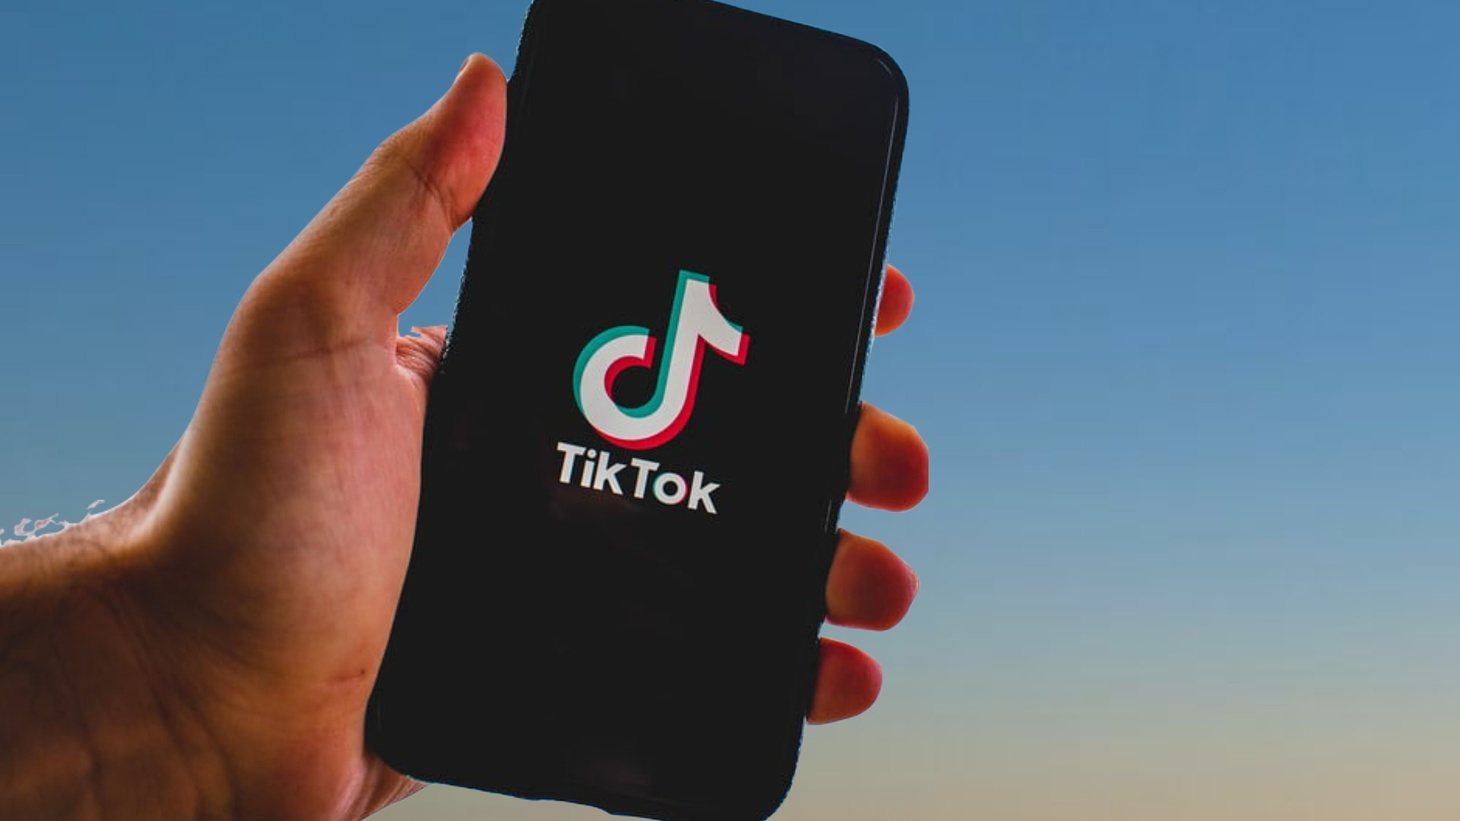 TikTok is suing the Trump administration in federal court in California.